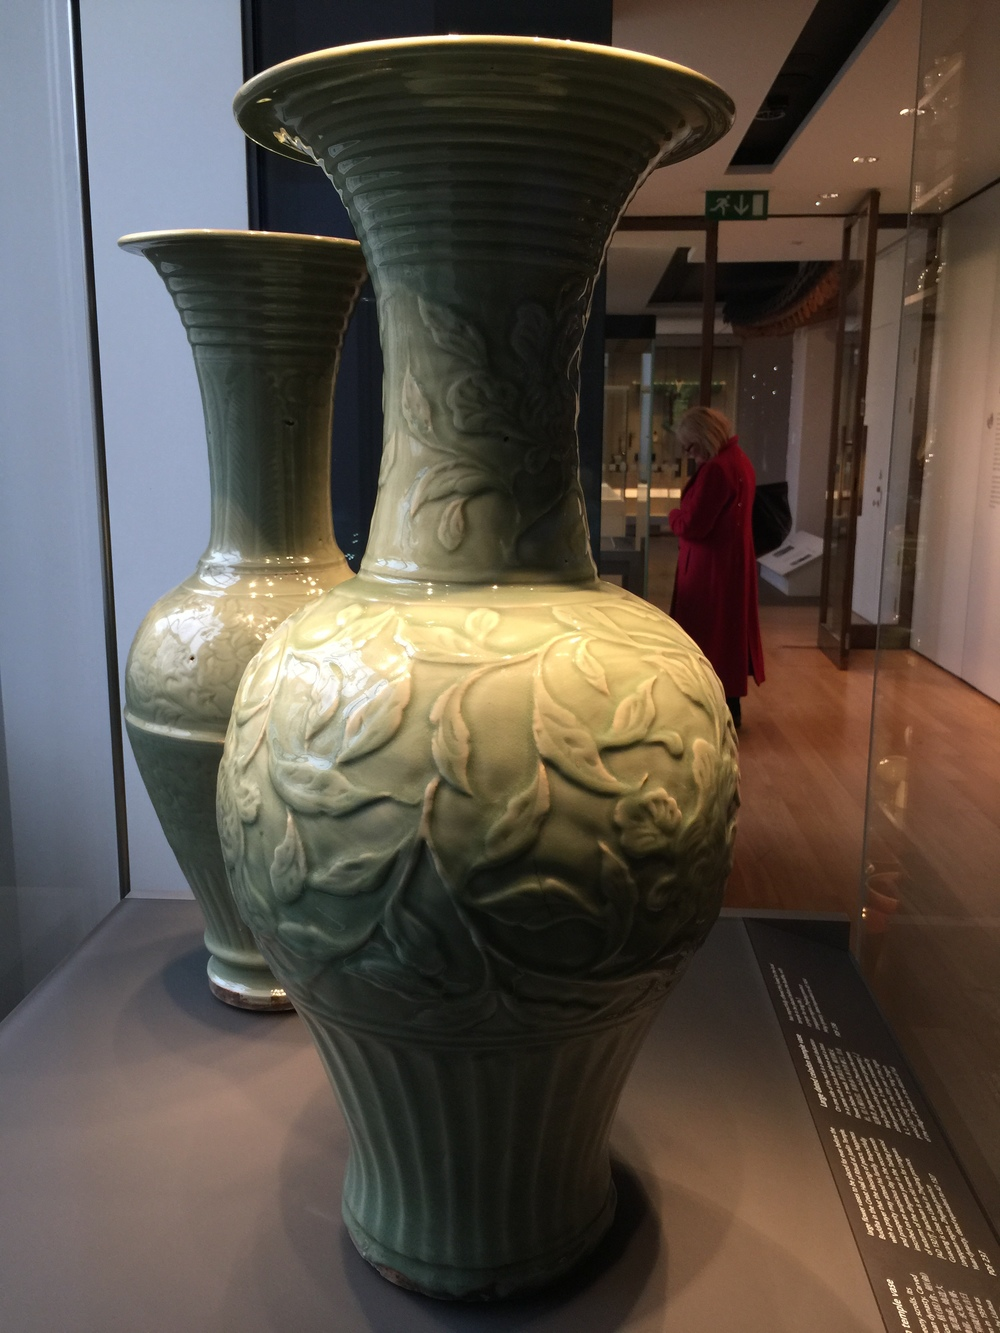 Chinese-Porcelain-British-Museum-Percival-David-jessewaugh.com-15.jpg